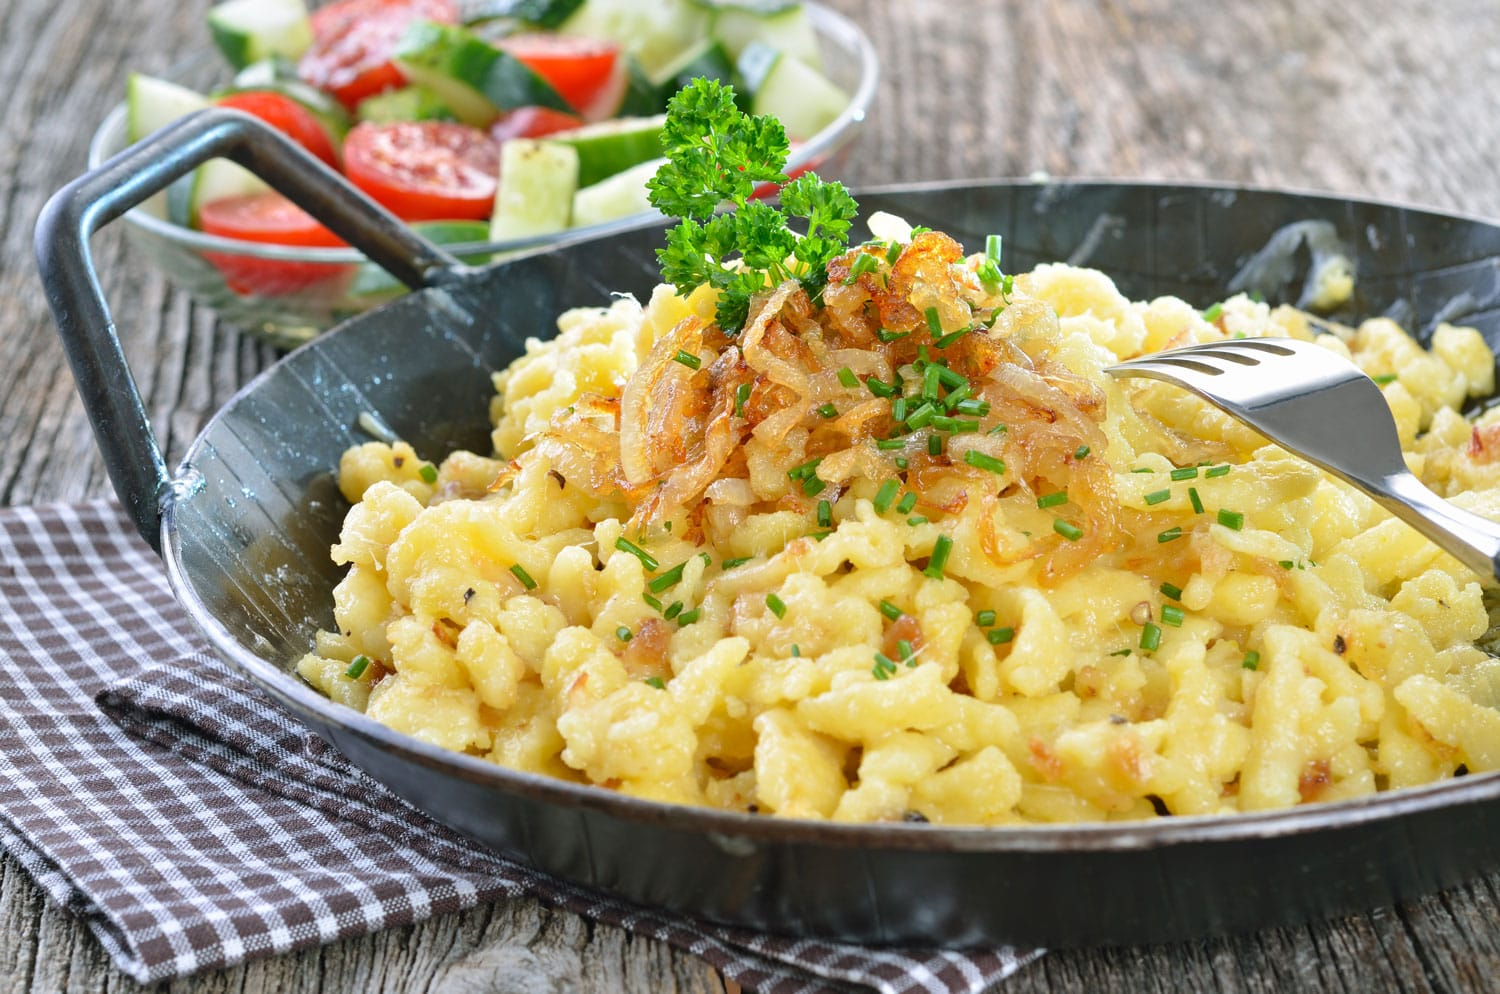 Austrian cheese noodles (spaetzle) in a serving pan